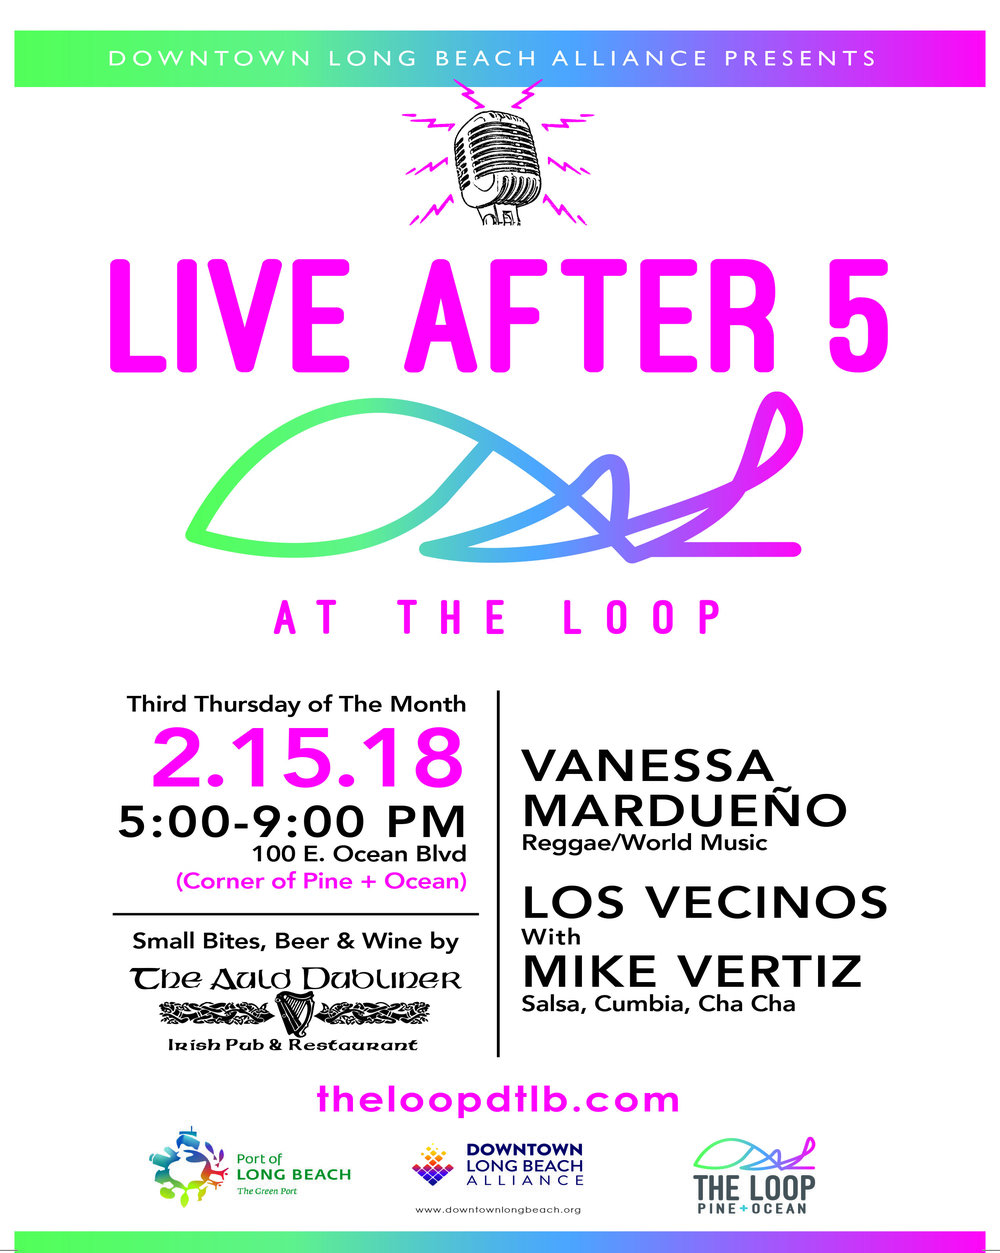 Live After 5 at The Loop - February 15, 2018